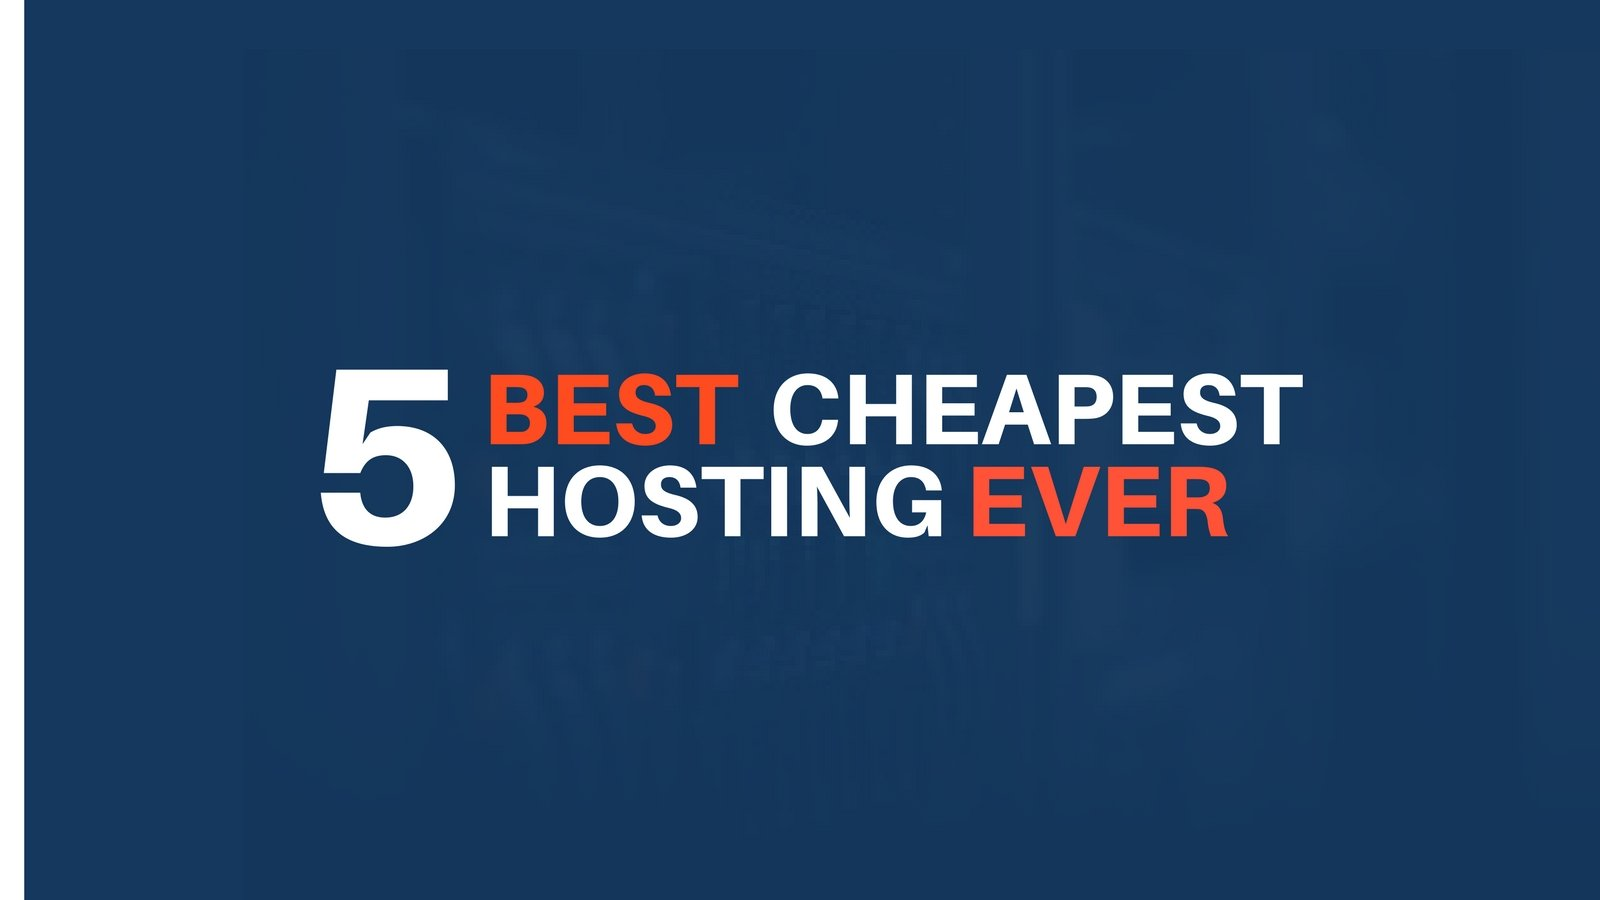 5-BEST-CHEAPEST-HOSTING